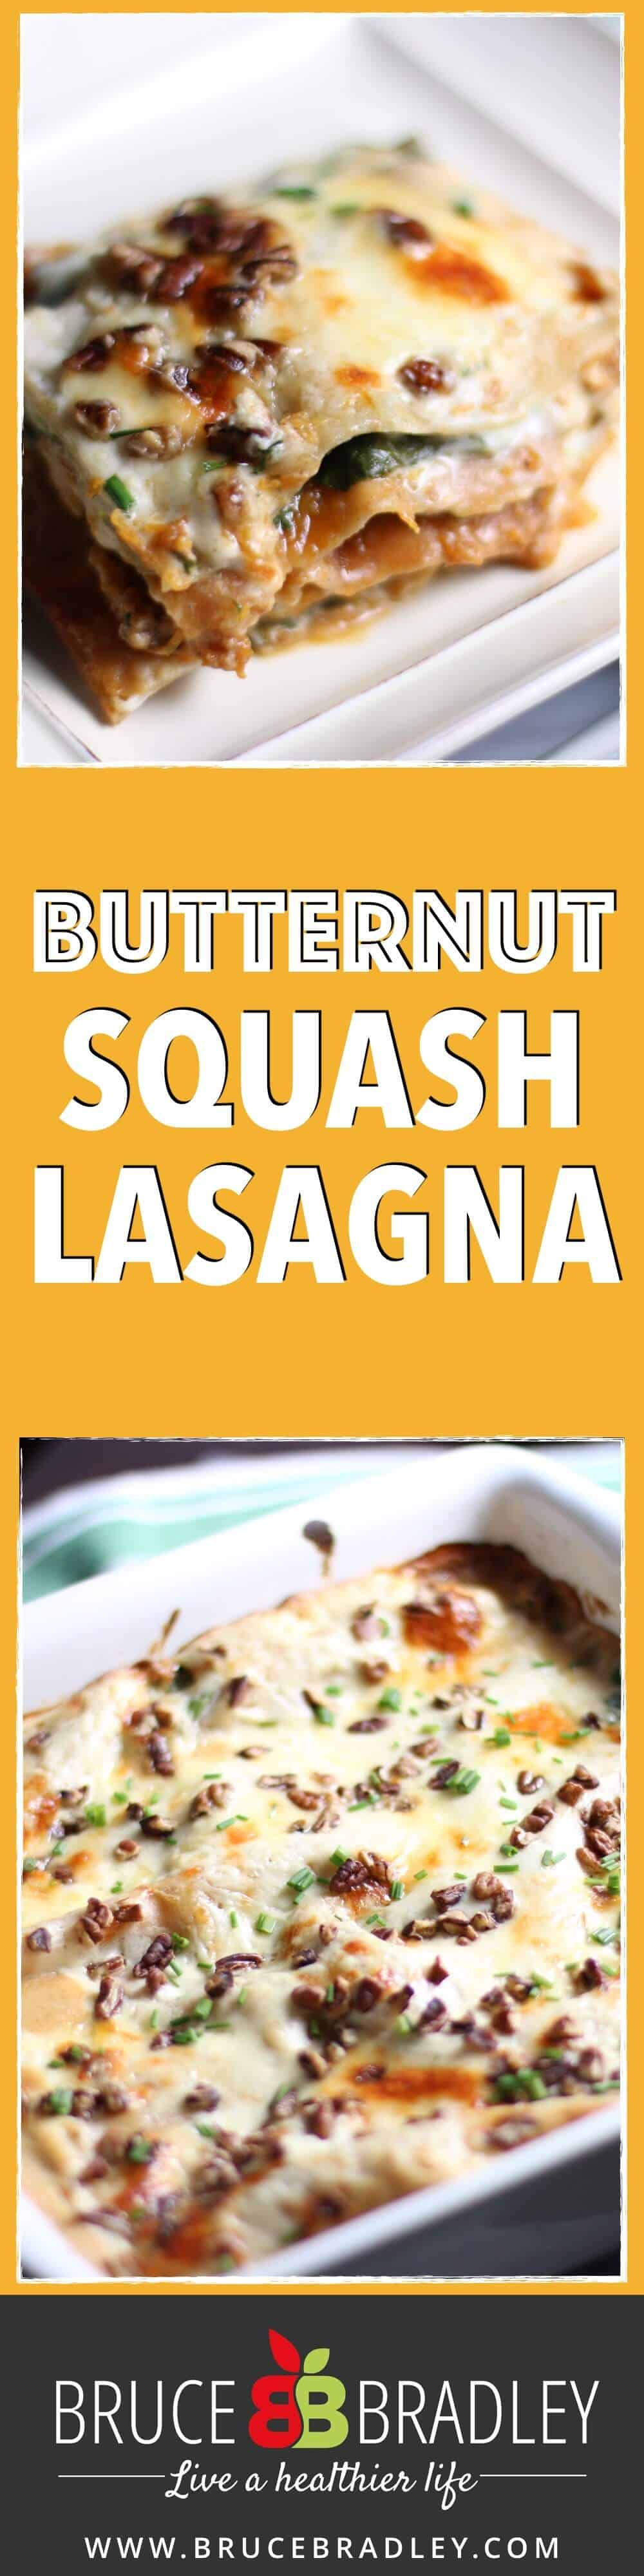 This Butternut Squash Lasagna recipe is a delicious, mouth-watering twist on traditional lasagna that's made with butternut squash, spinach, and Swiss cheese!